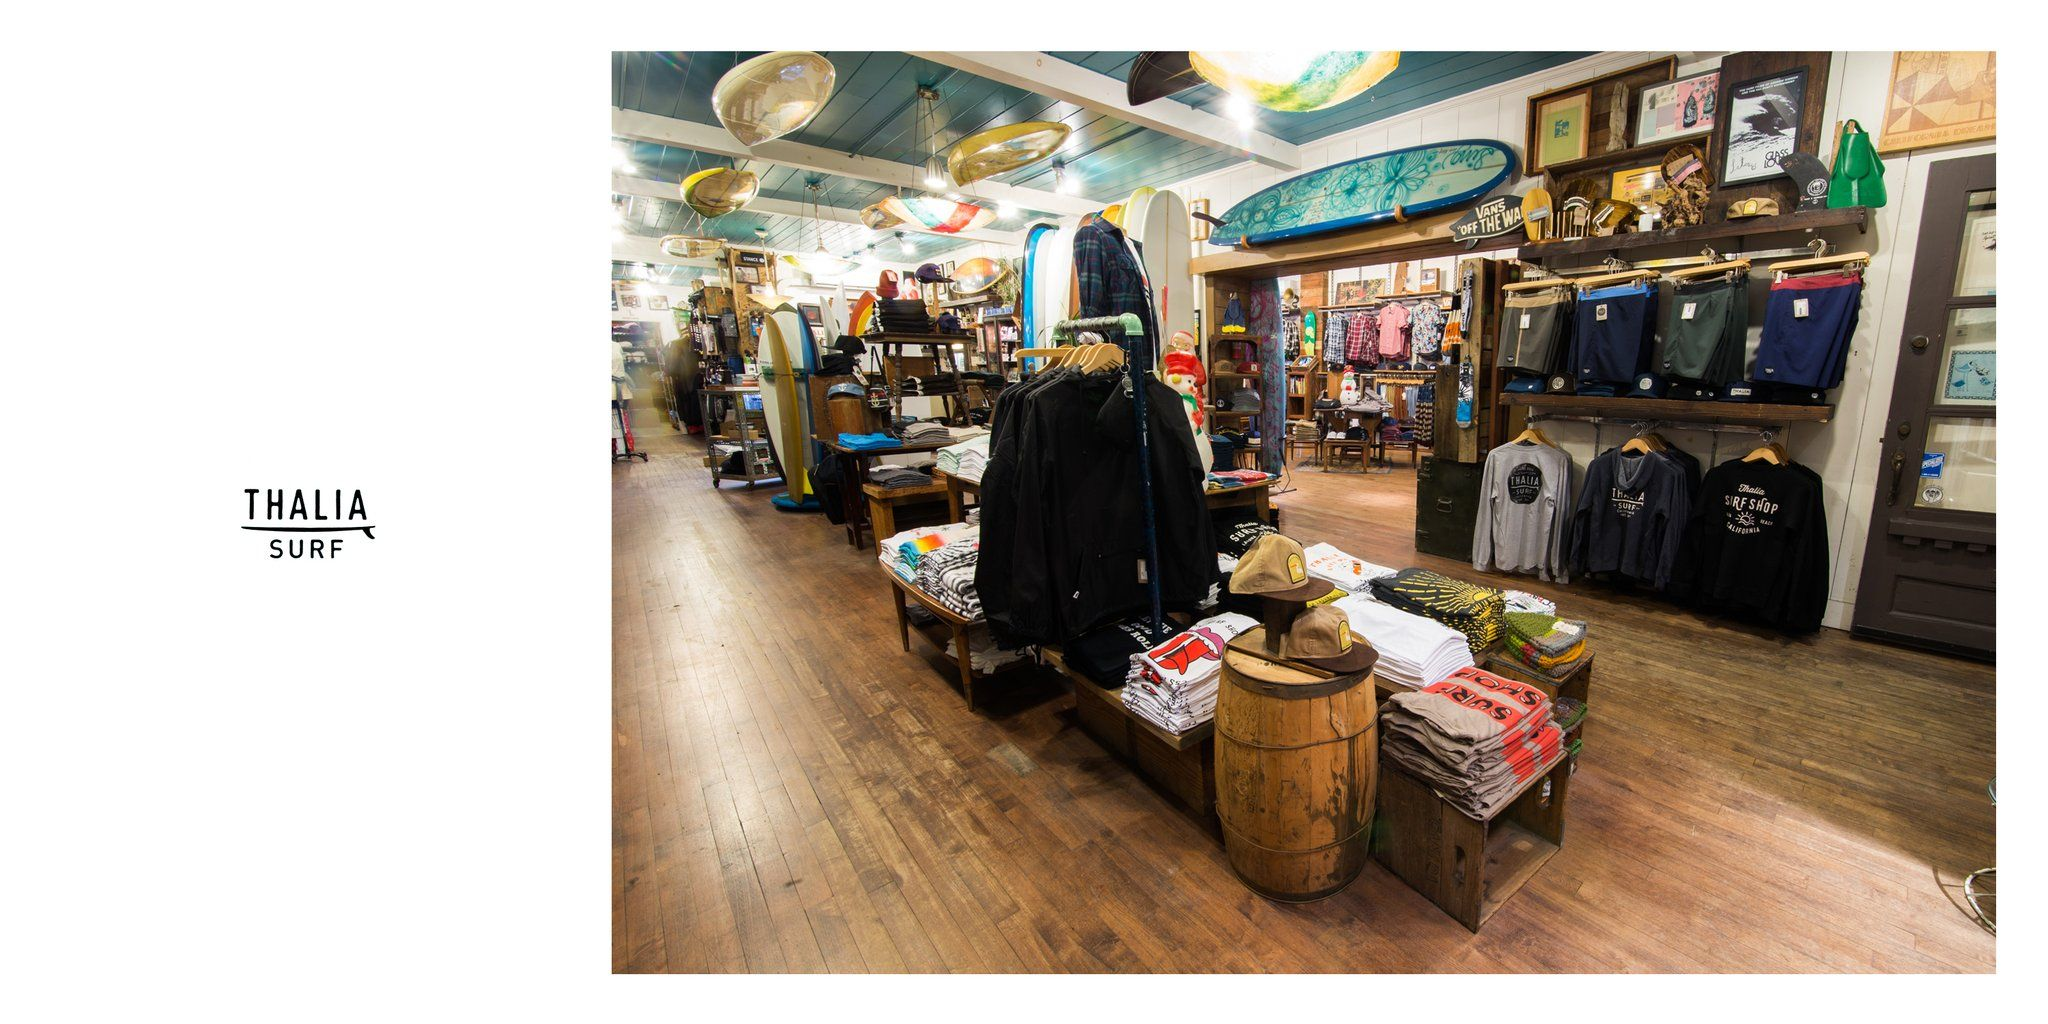 Inside the shop 2017 Surf-shop ea2bd70244a